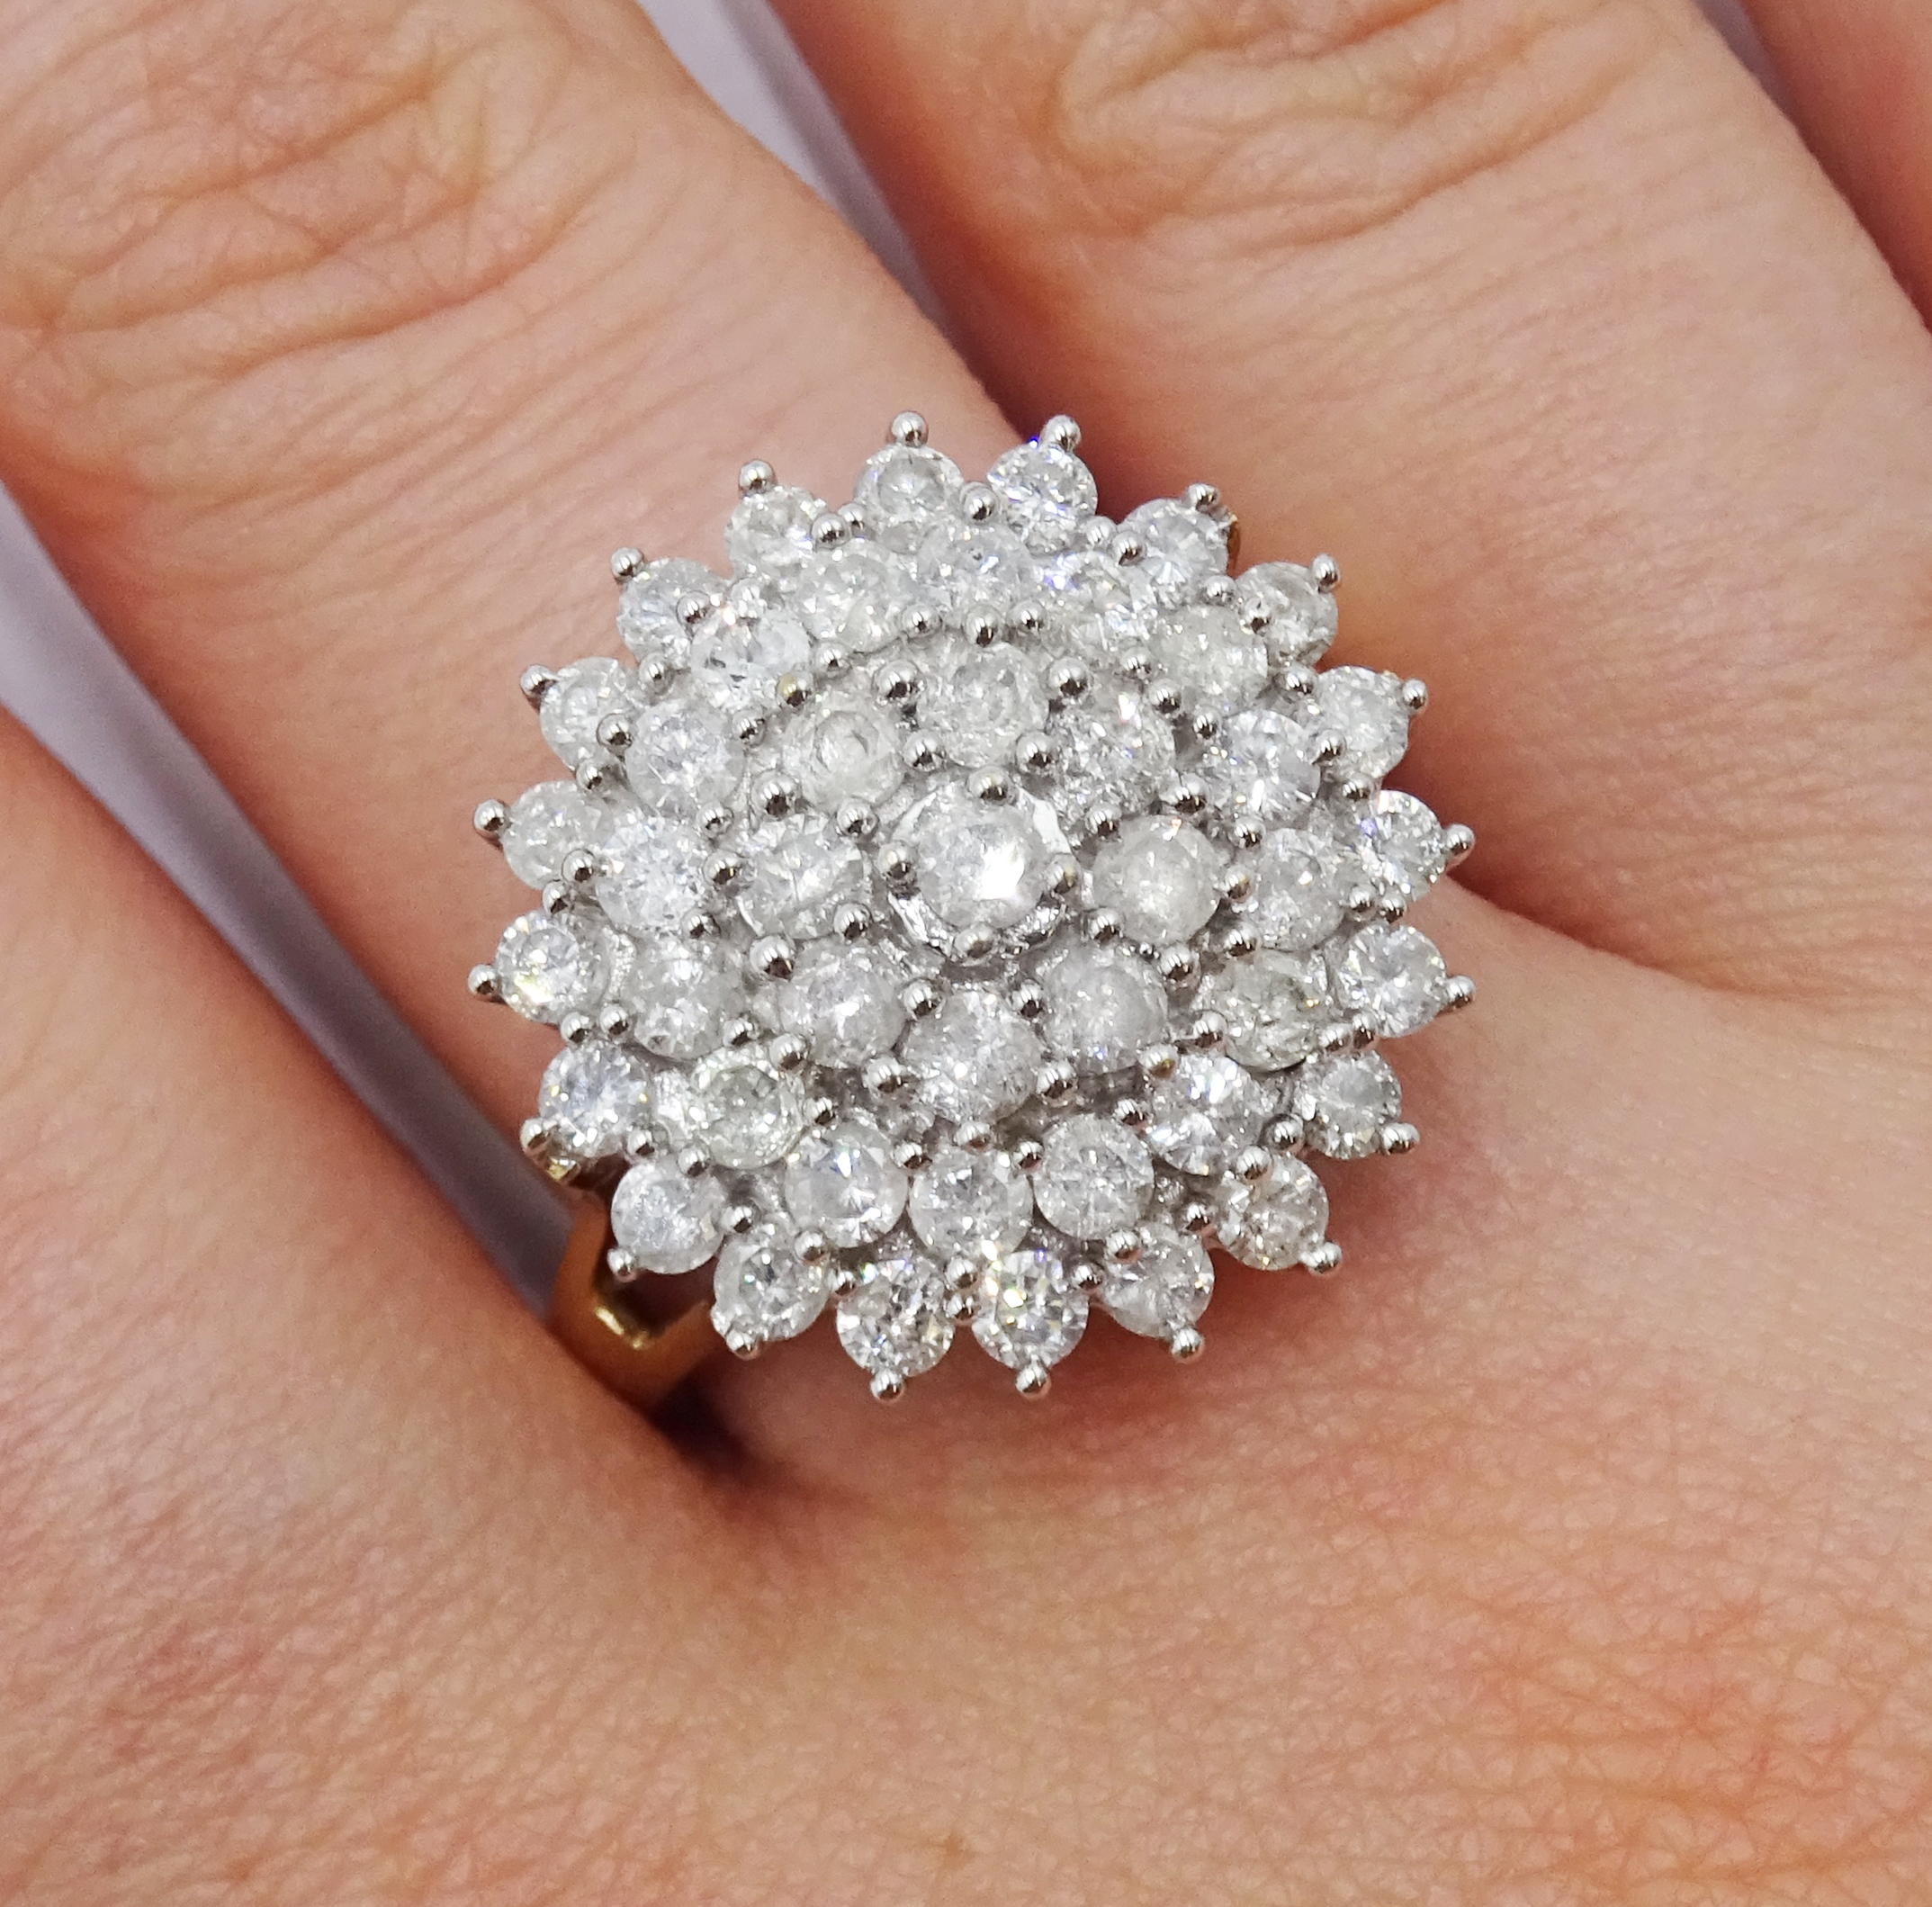 9ct gold cluster ring set with diamonds, diamond total weight approx 2.00 carat, free UK mainland - Image 2 of 6